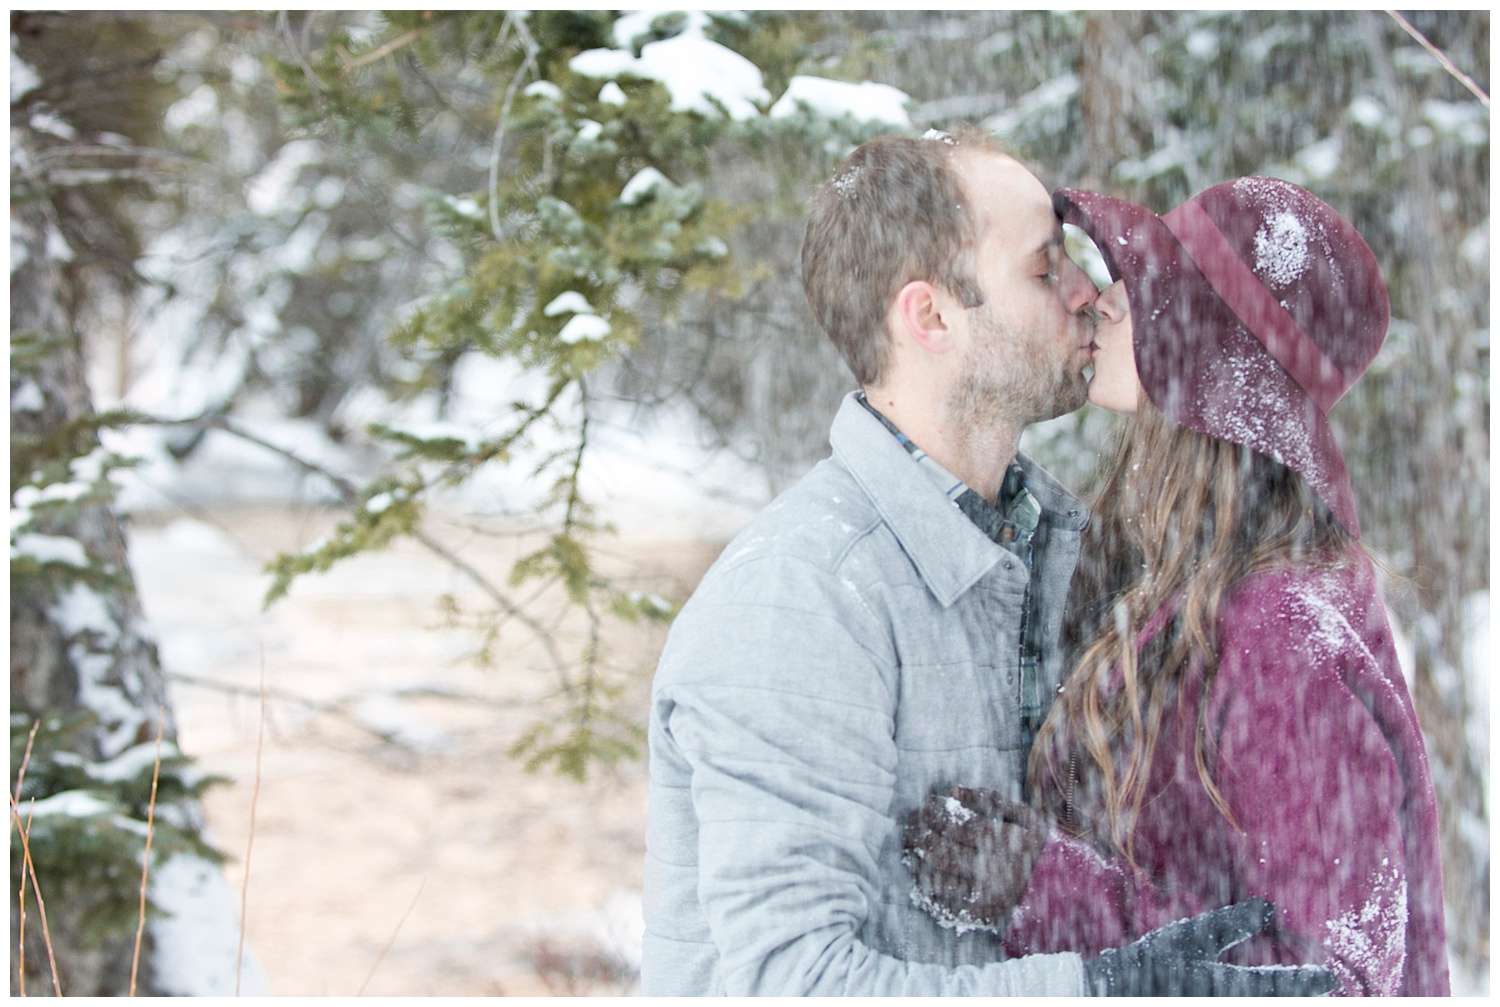 Breckenridge_Colorado_Engagement_Photographer_Ski_Resort_Mountain_Town_Photography_Engagement_Photos_006.jpg